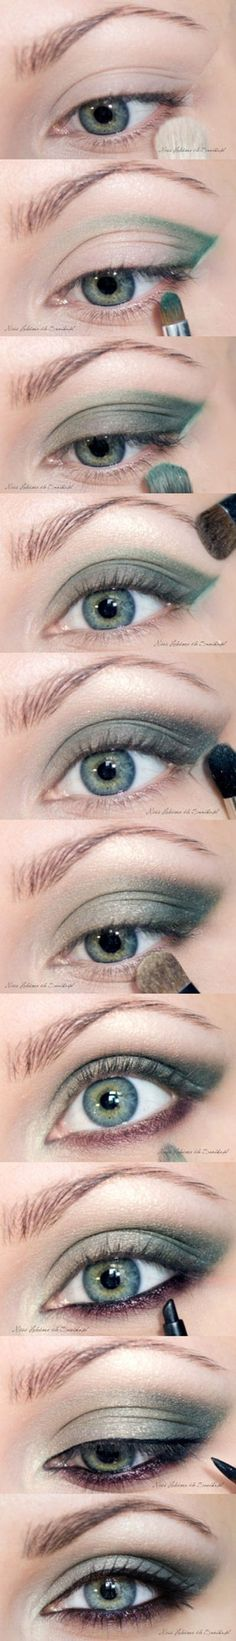 TUTORIAL – Emerald Smoky Eye Makeup